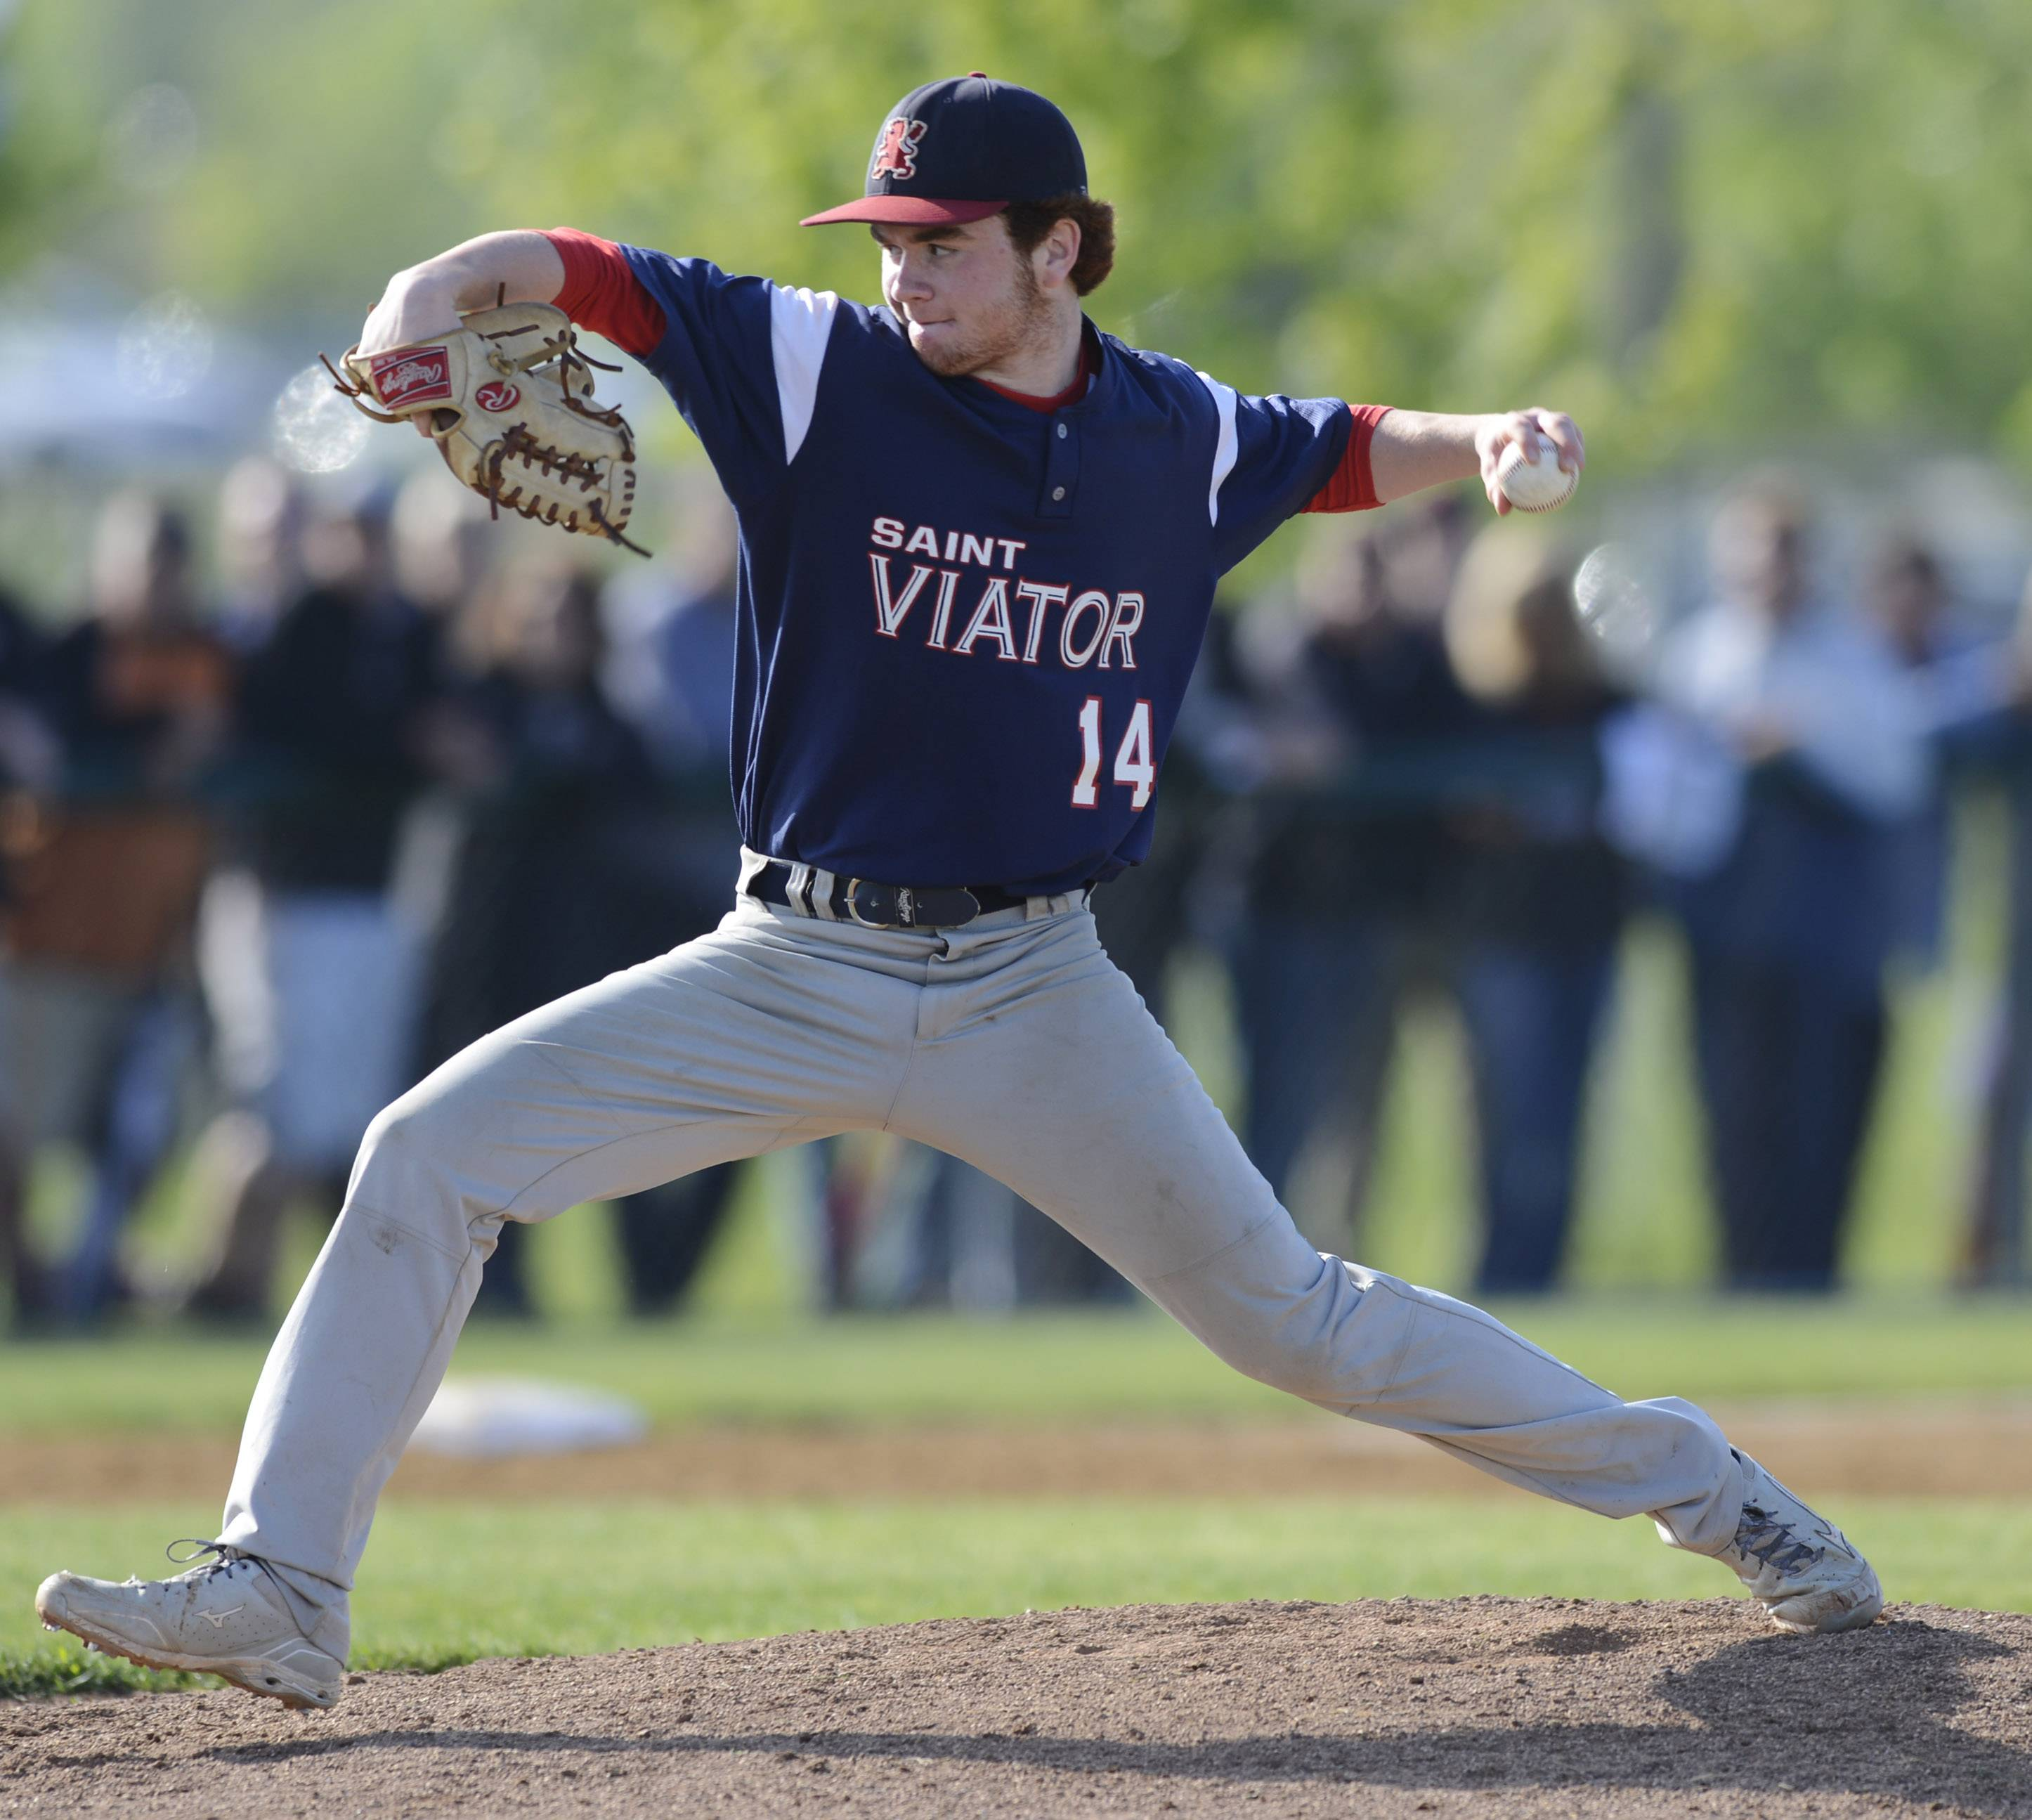 St. Viator relief pitcher Mike Piet delivers to the plate during Class 4A baseball sectional semifinal play at Glenbrook South on Wednesday.